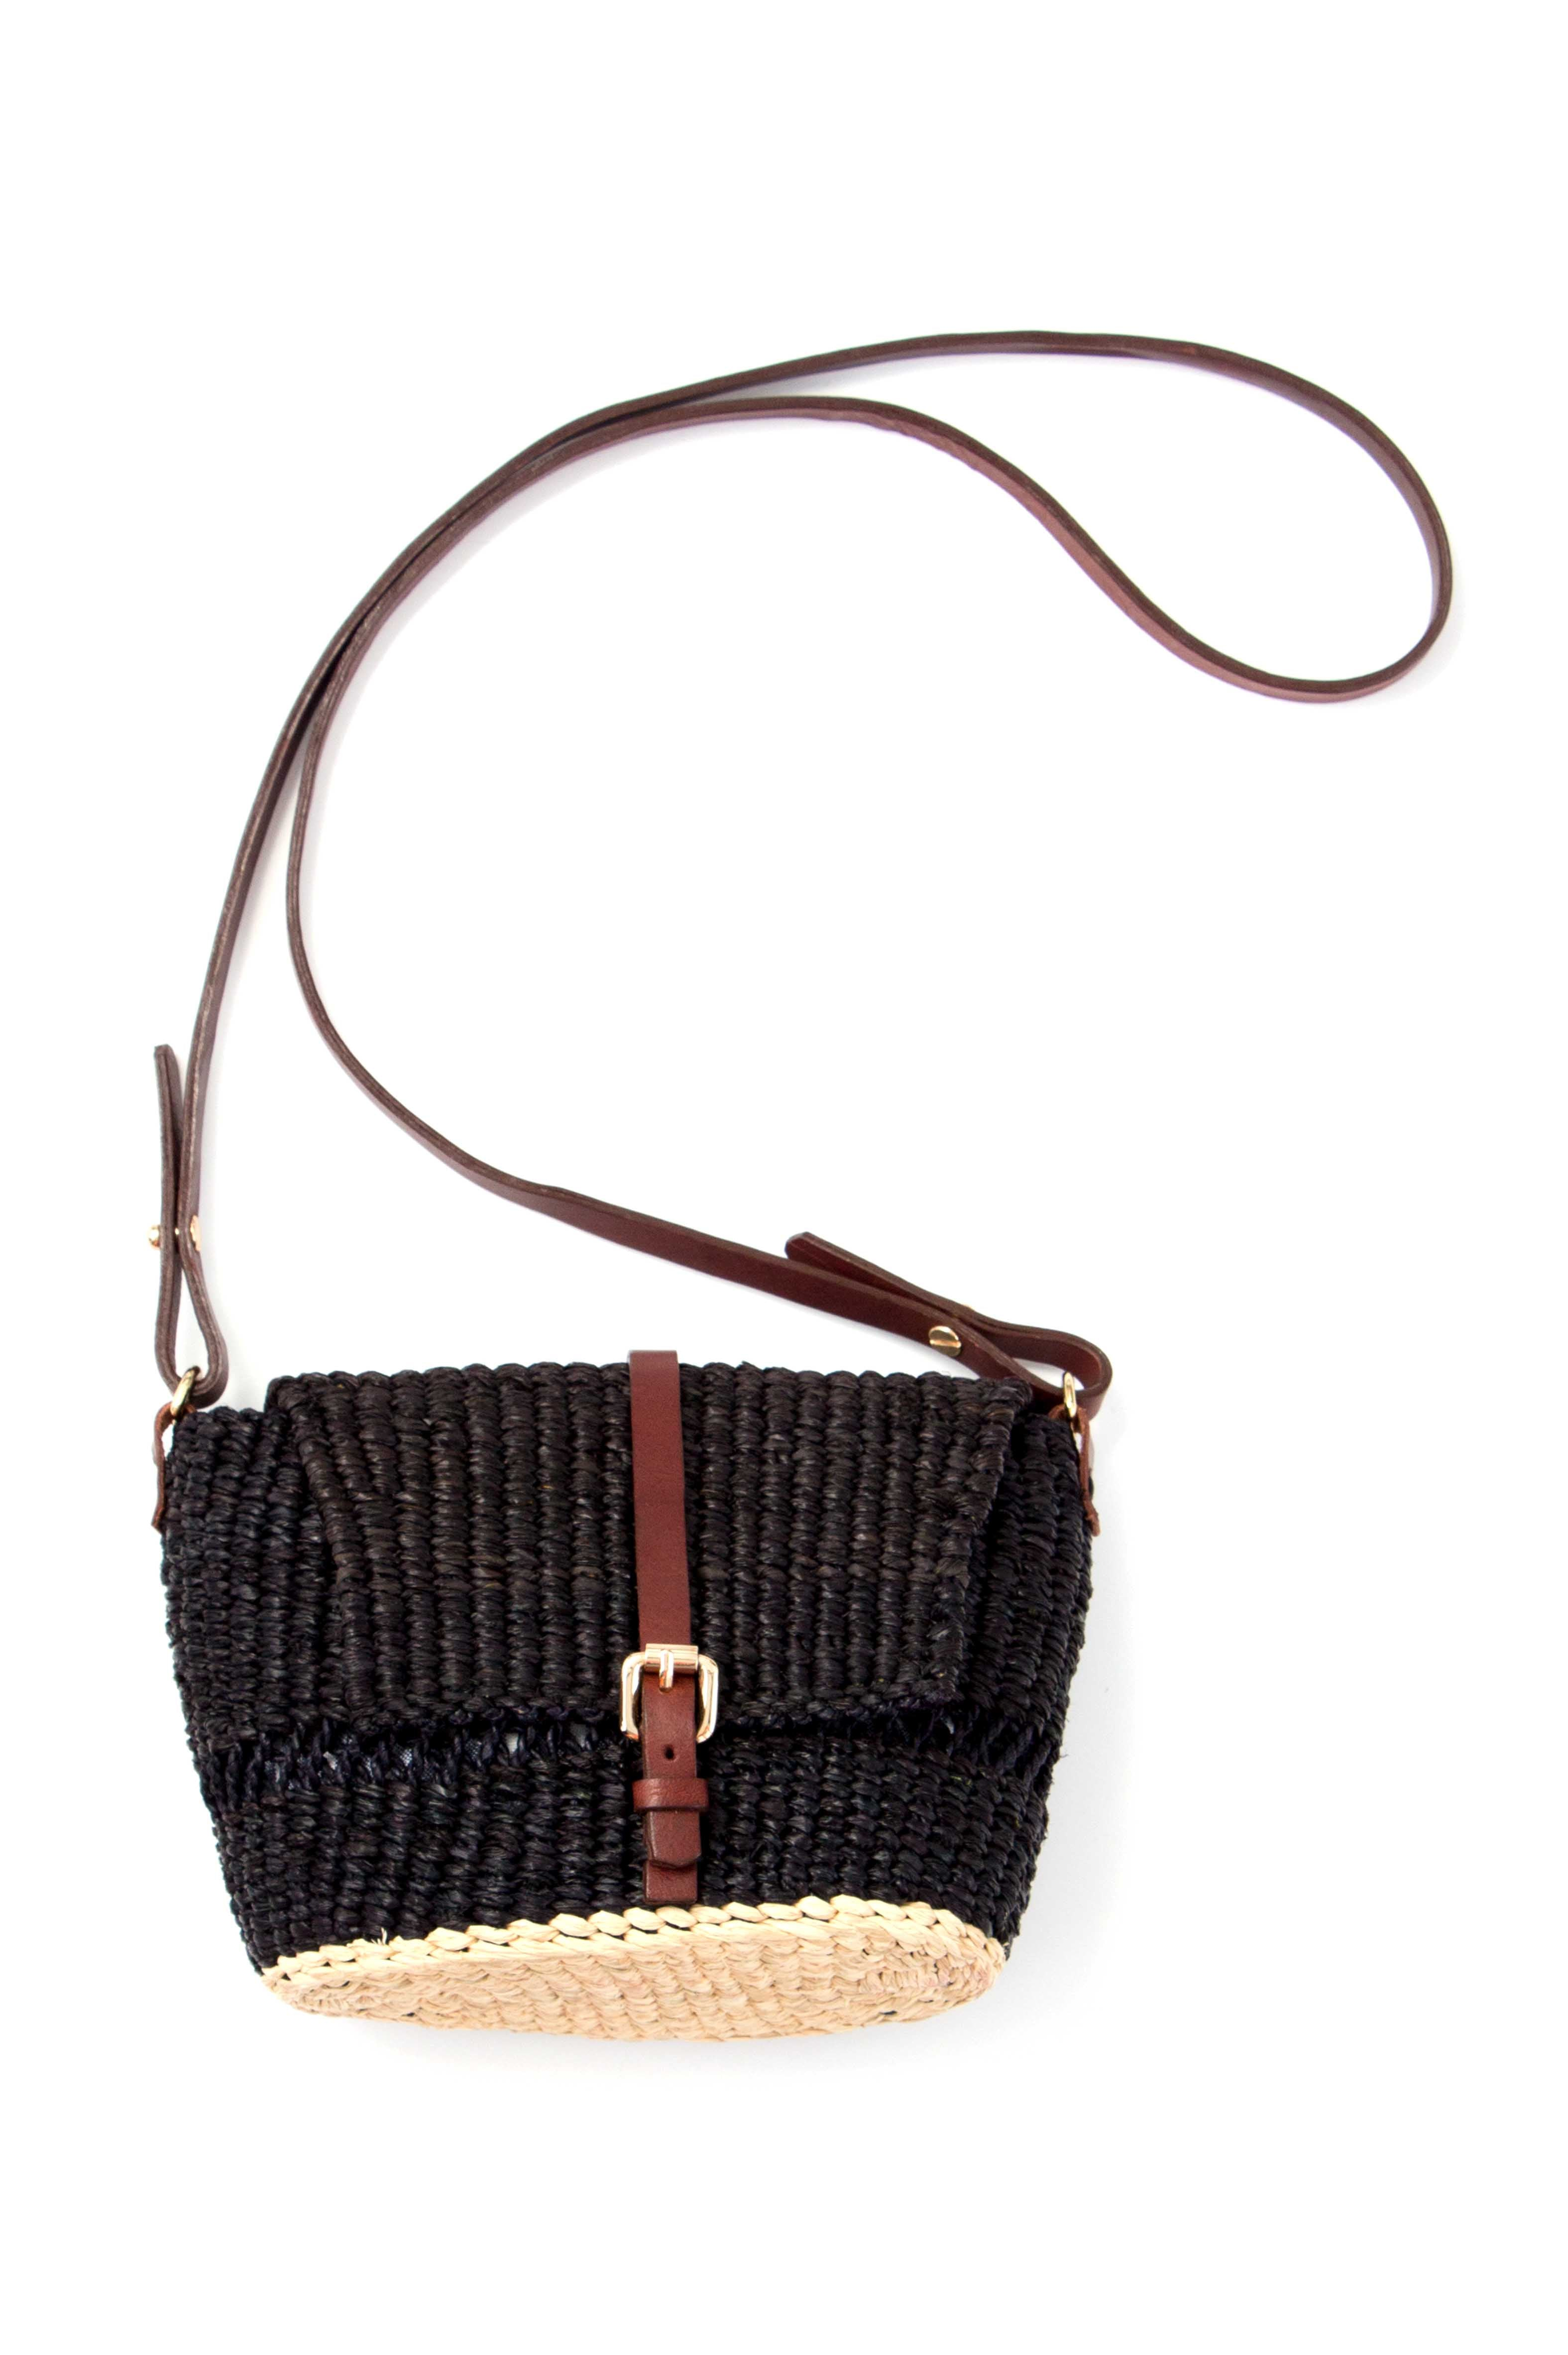 271ca056e7 Bika Noir Shoulder Bag